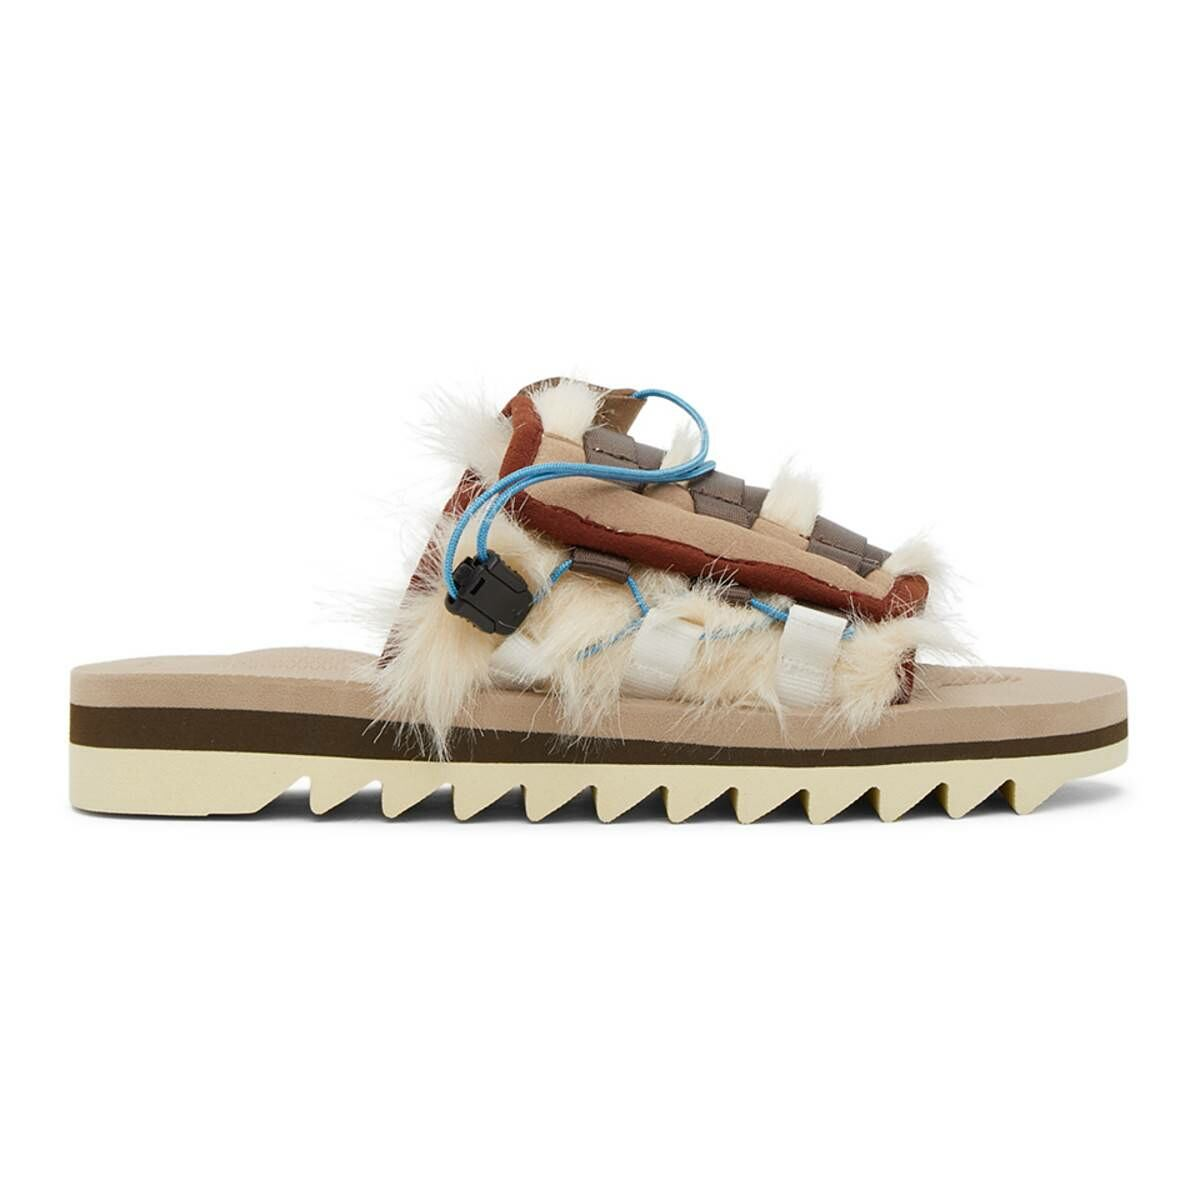 Suicoke Beige DAO-3 Sandals Ssense USA MEN Men SHOES Mens SANDALS